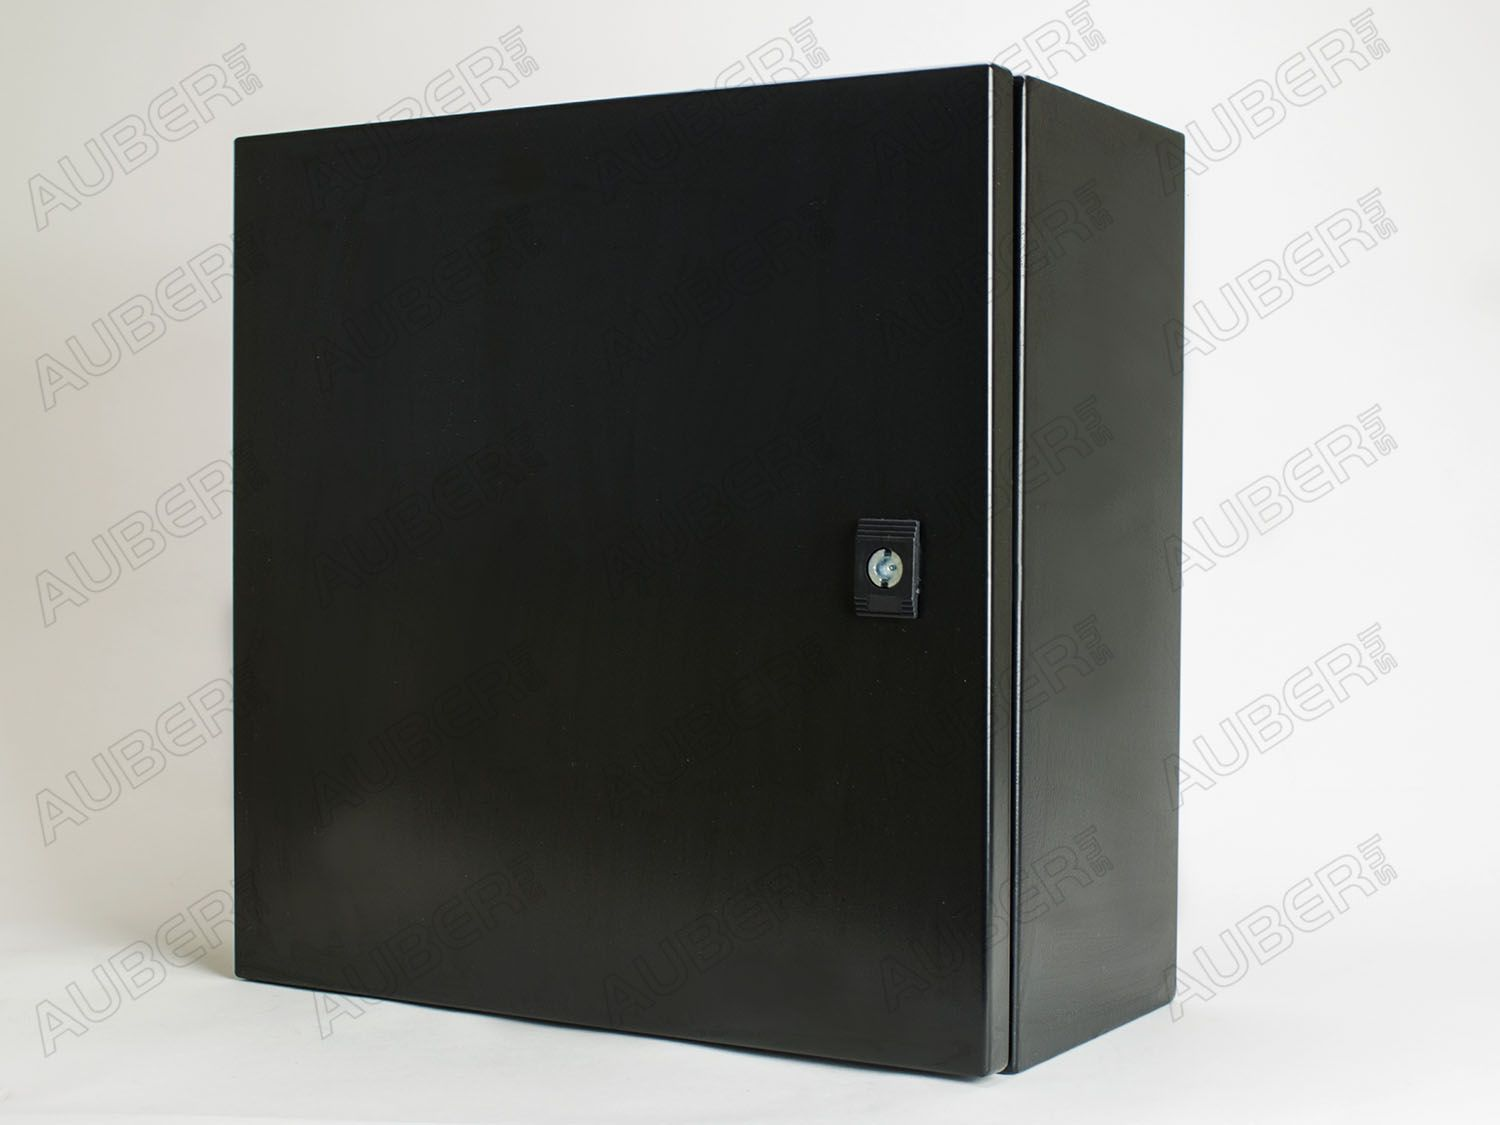 B404020_BLACK auberins com, temperature control solutions for home and industry  at webbmarketing.co